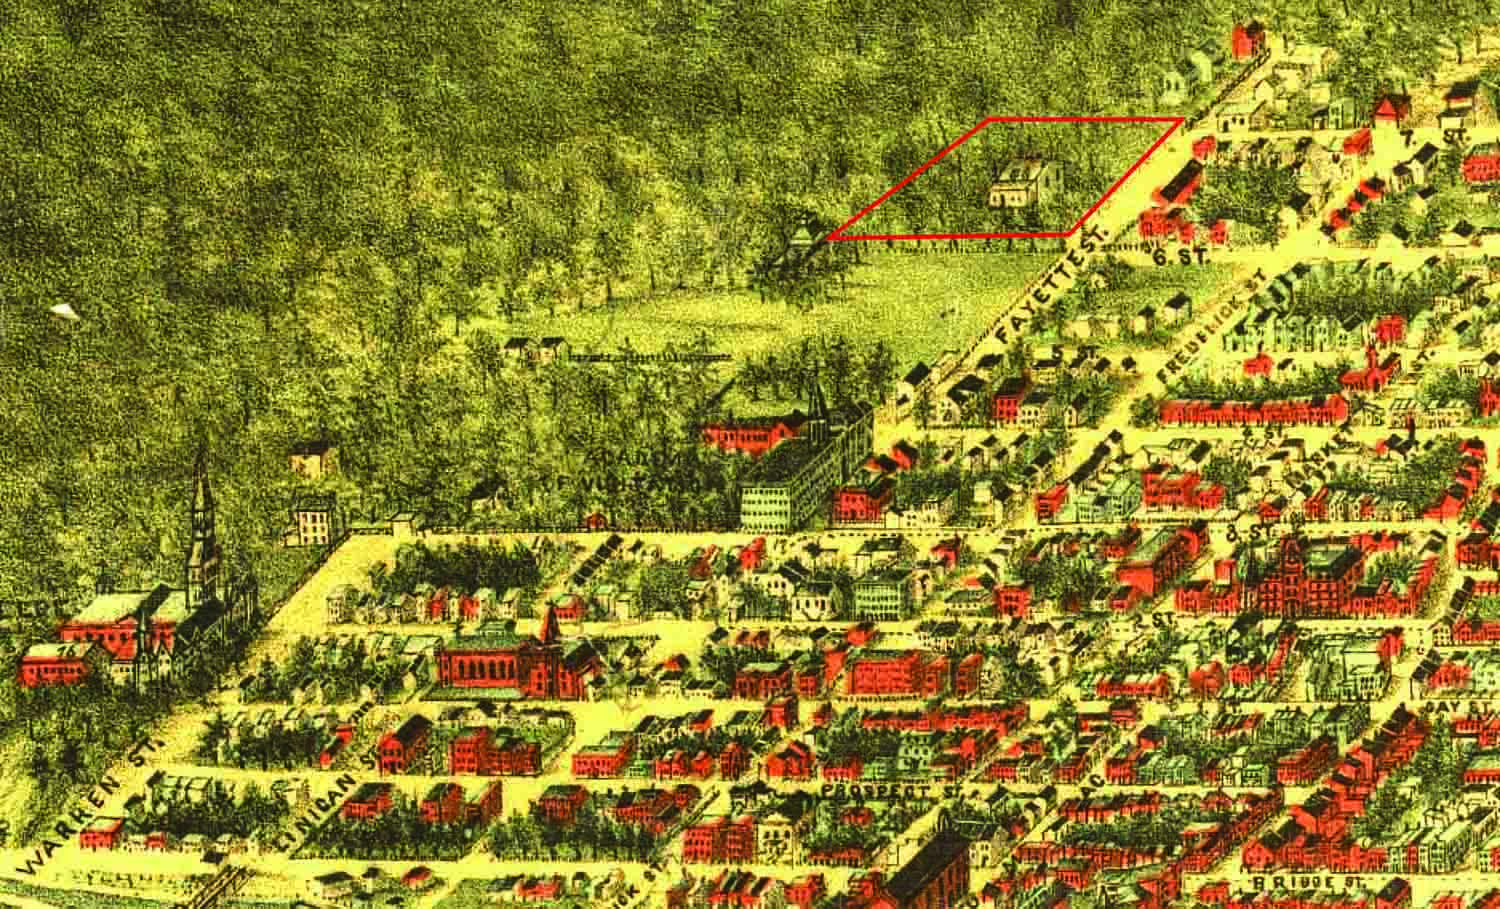 "Outlined in red, the original Cedars was a few blocks north of Georgetown University. Detail: The national capital, Washington, D.C. Sketched from nature by Adolph Sachse, 1883–1884. Library of Congress Geography and Map Division. 75693178.      Normal   0           false   false   false     EN-US   X-NONE   X-NONE                                                                                                                                                                                                                                                                                                                                                                                                                                                                                                                                                                                                                                                                                                                                                                                                                                                        /* Style Definitions */  table.MsoNormalTable 	{mso-style-name:""Table Normal""; 	mso-tstyle-rowband-size:0; 	mso-tstyle-colband-size:0; 	mso-style-noshow:yes; 	mso-style-priority:99; 	mso-style-parent:""""; 	mso-padding-alt:0in 5.4pt 0in 5.4pt; 	mso-para-margin-top:0in; 	mso-para-margin-right:0in; 	mso-para-margin-bottom:8.0pt; 	mso-para-margin-left:0in; 	line-height:107%; 	mso-pagination:widow-orphan; 	font-size:11.0pt; 	font-family:""Calibri"",sans-serif; 	mso-ascii-font-family:Calibri; 	mso-ascii-theme-font:minor-latin; 	mso-hansi-font-family:Calibri; 	mso-hansi-theme-font:minor-latin;}"